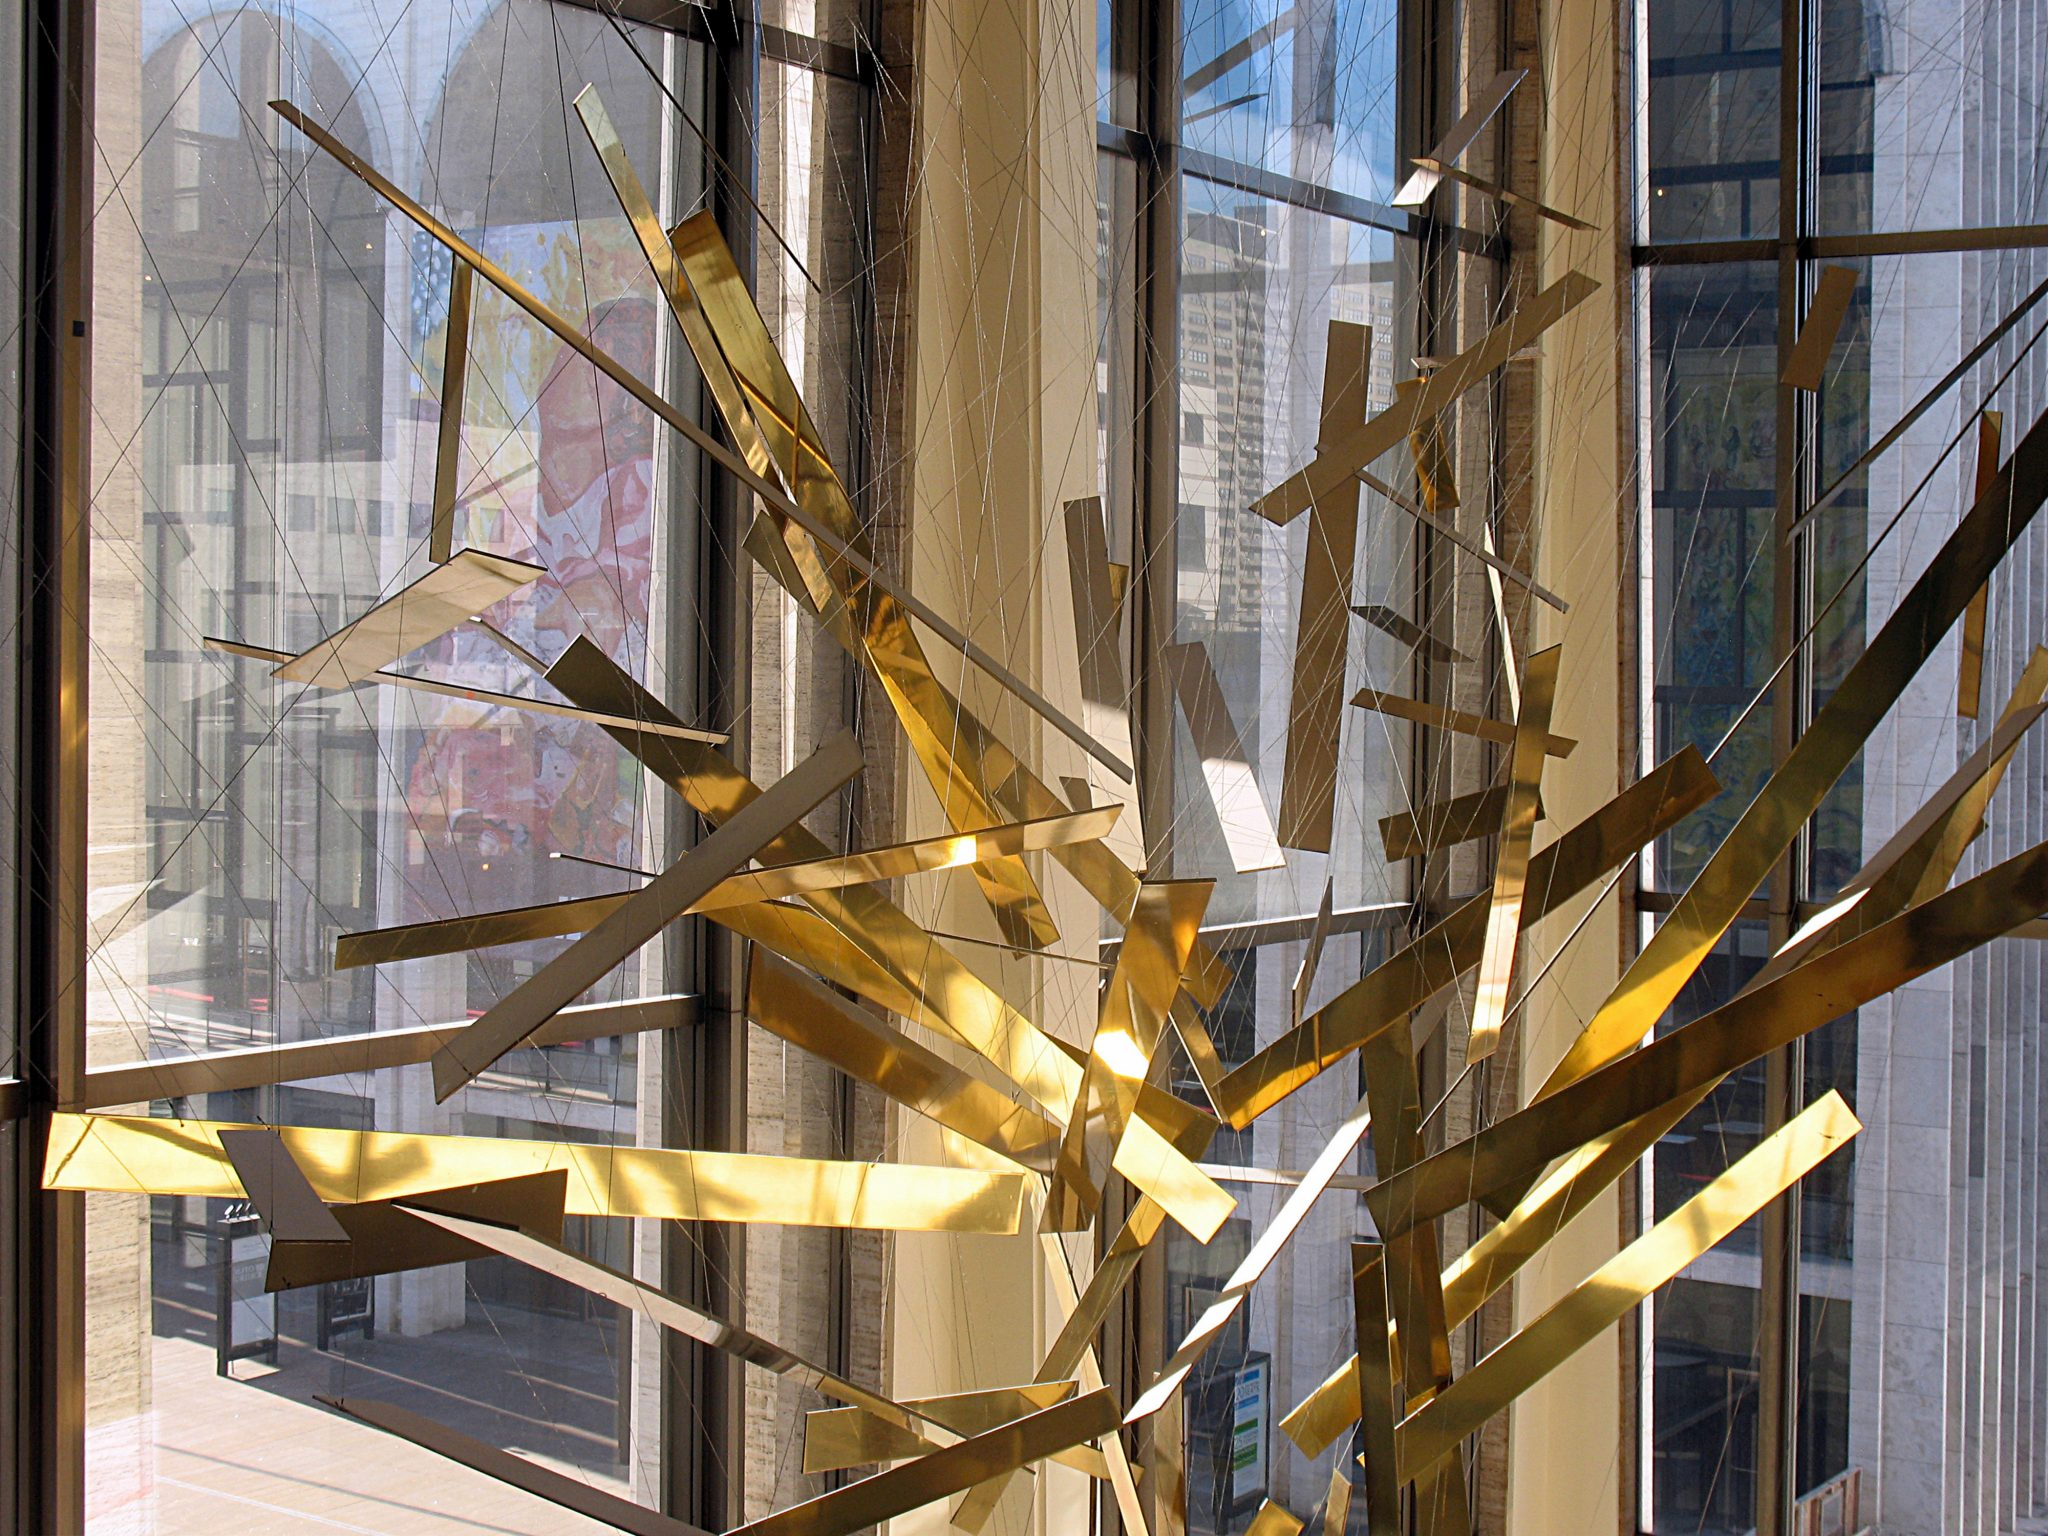 Seven to Save – UWS Gets Brassy with the PLNYS for the Richard Lippold Installation at Lincoln Center